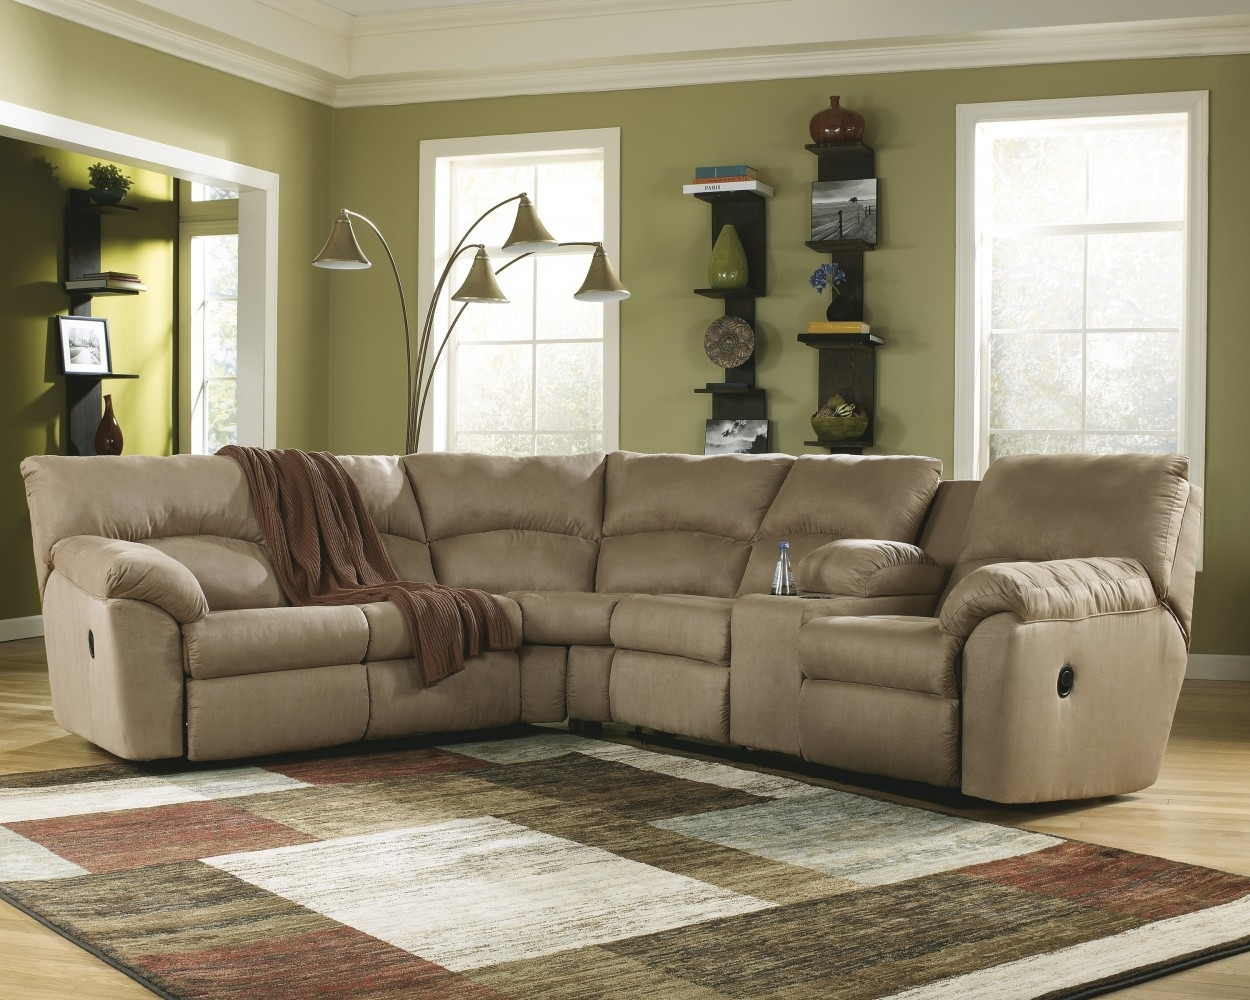 Large Sectional Sofas Ontario. Sectional Sofa Cjkpp. Leather Sofa in Kitchener Sectional Sofas (Image 7 of 10)